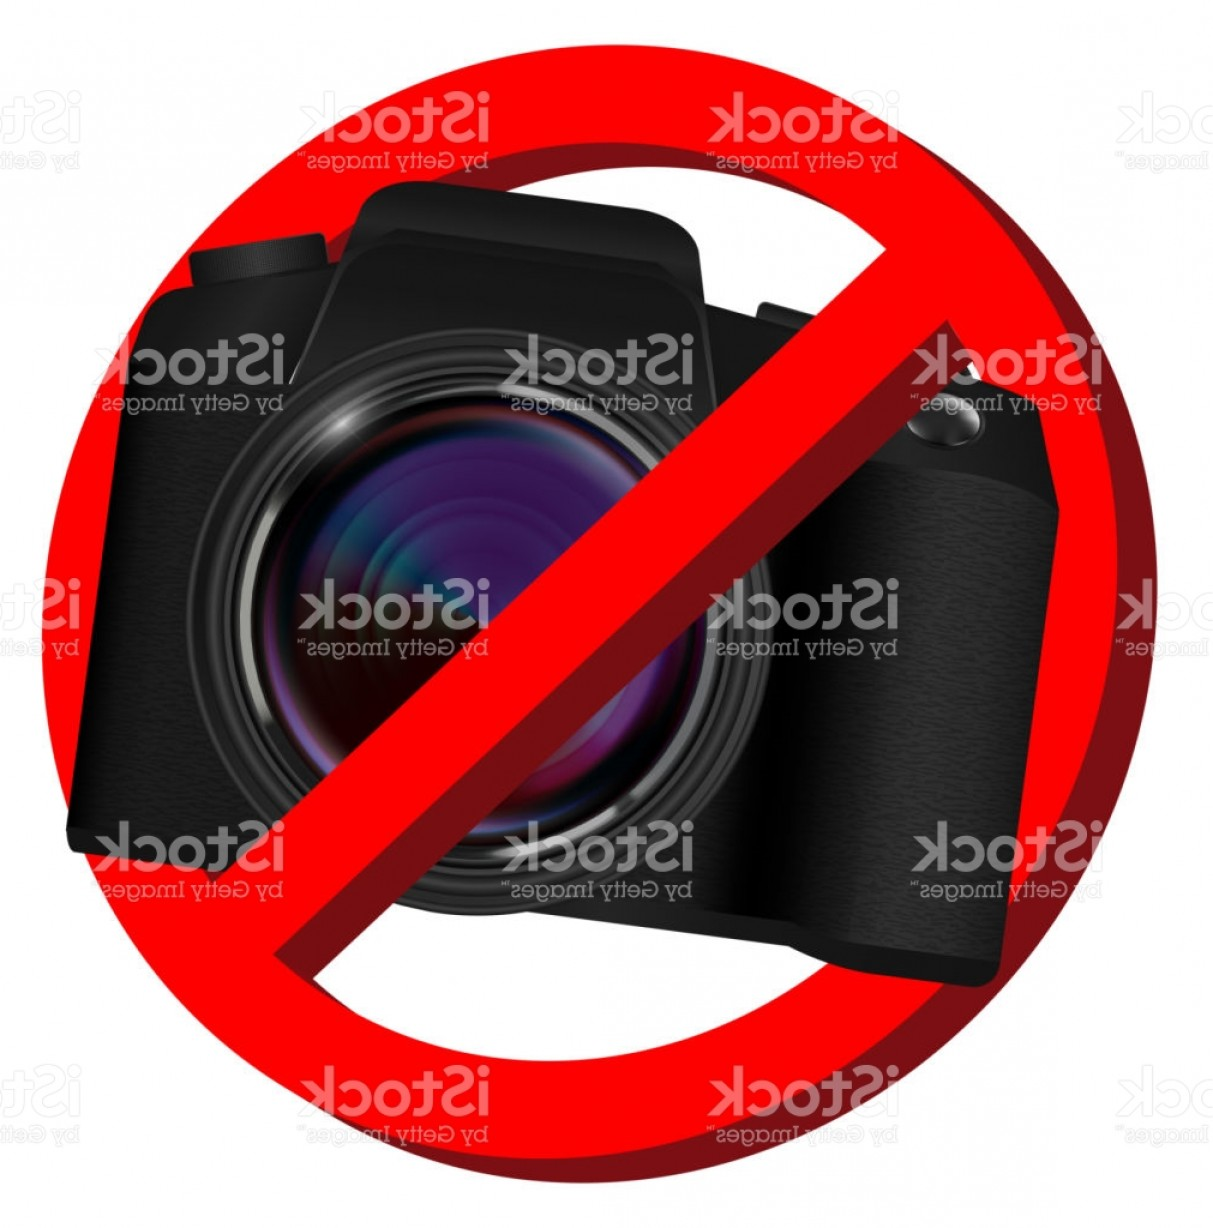 SLR Camera Vector: Real Dslr Camera Vector On A White Background Gm